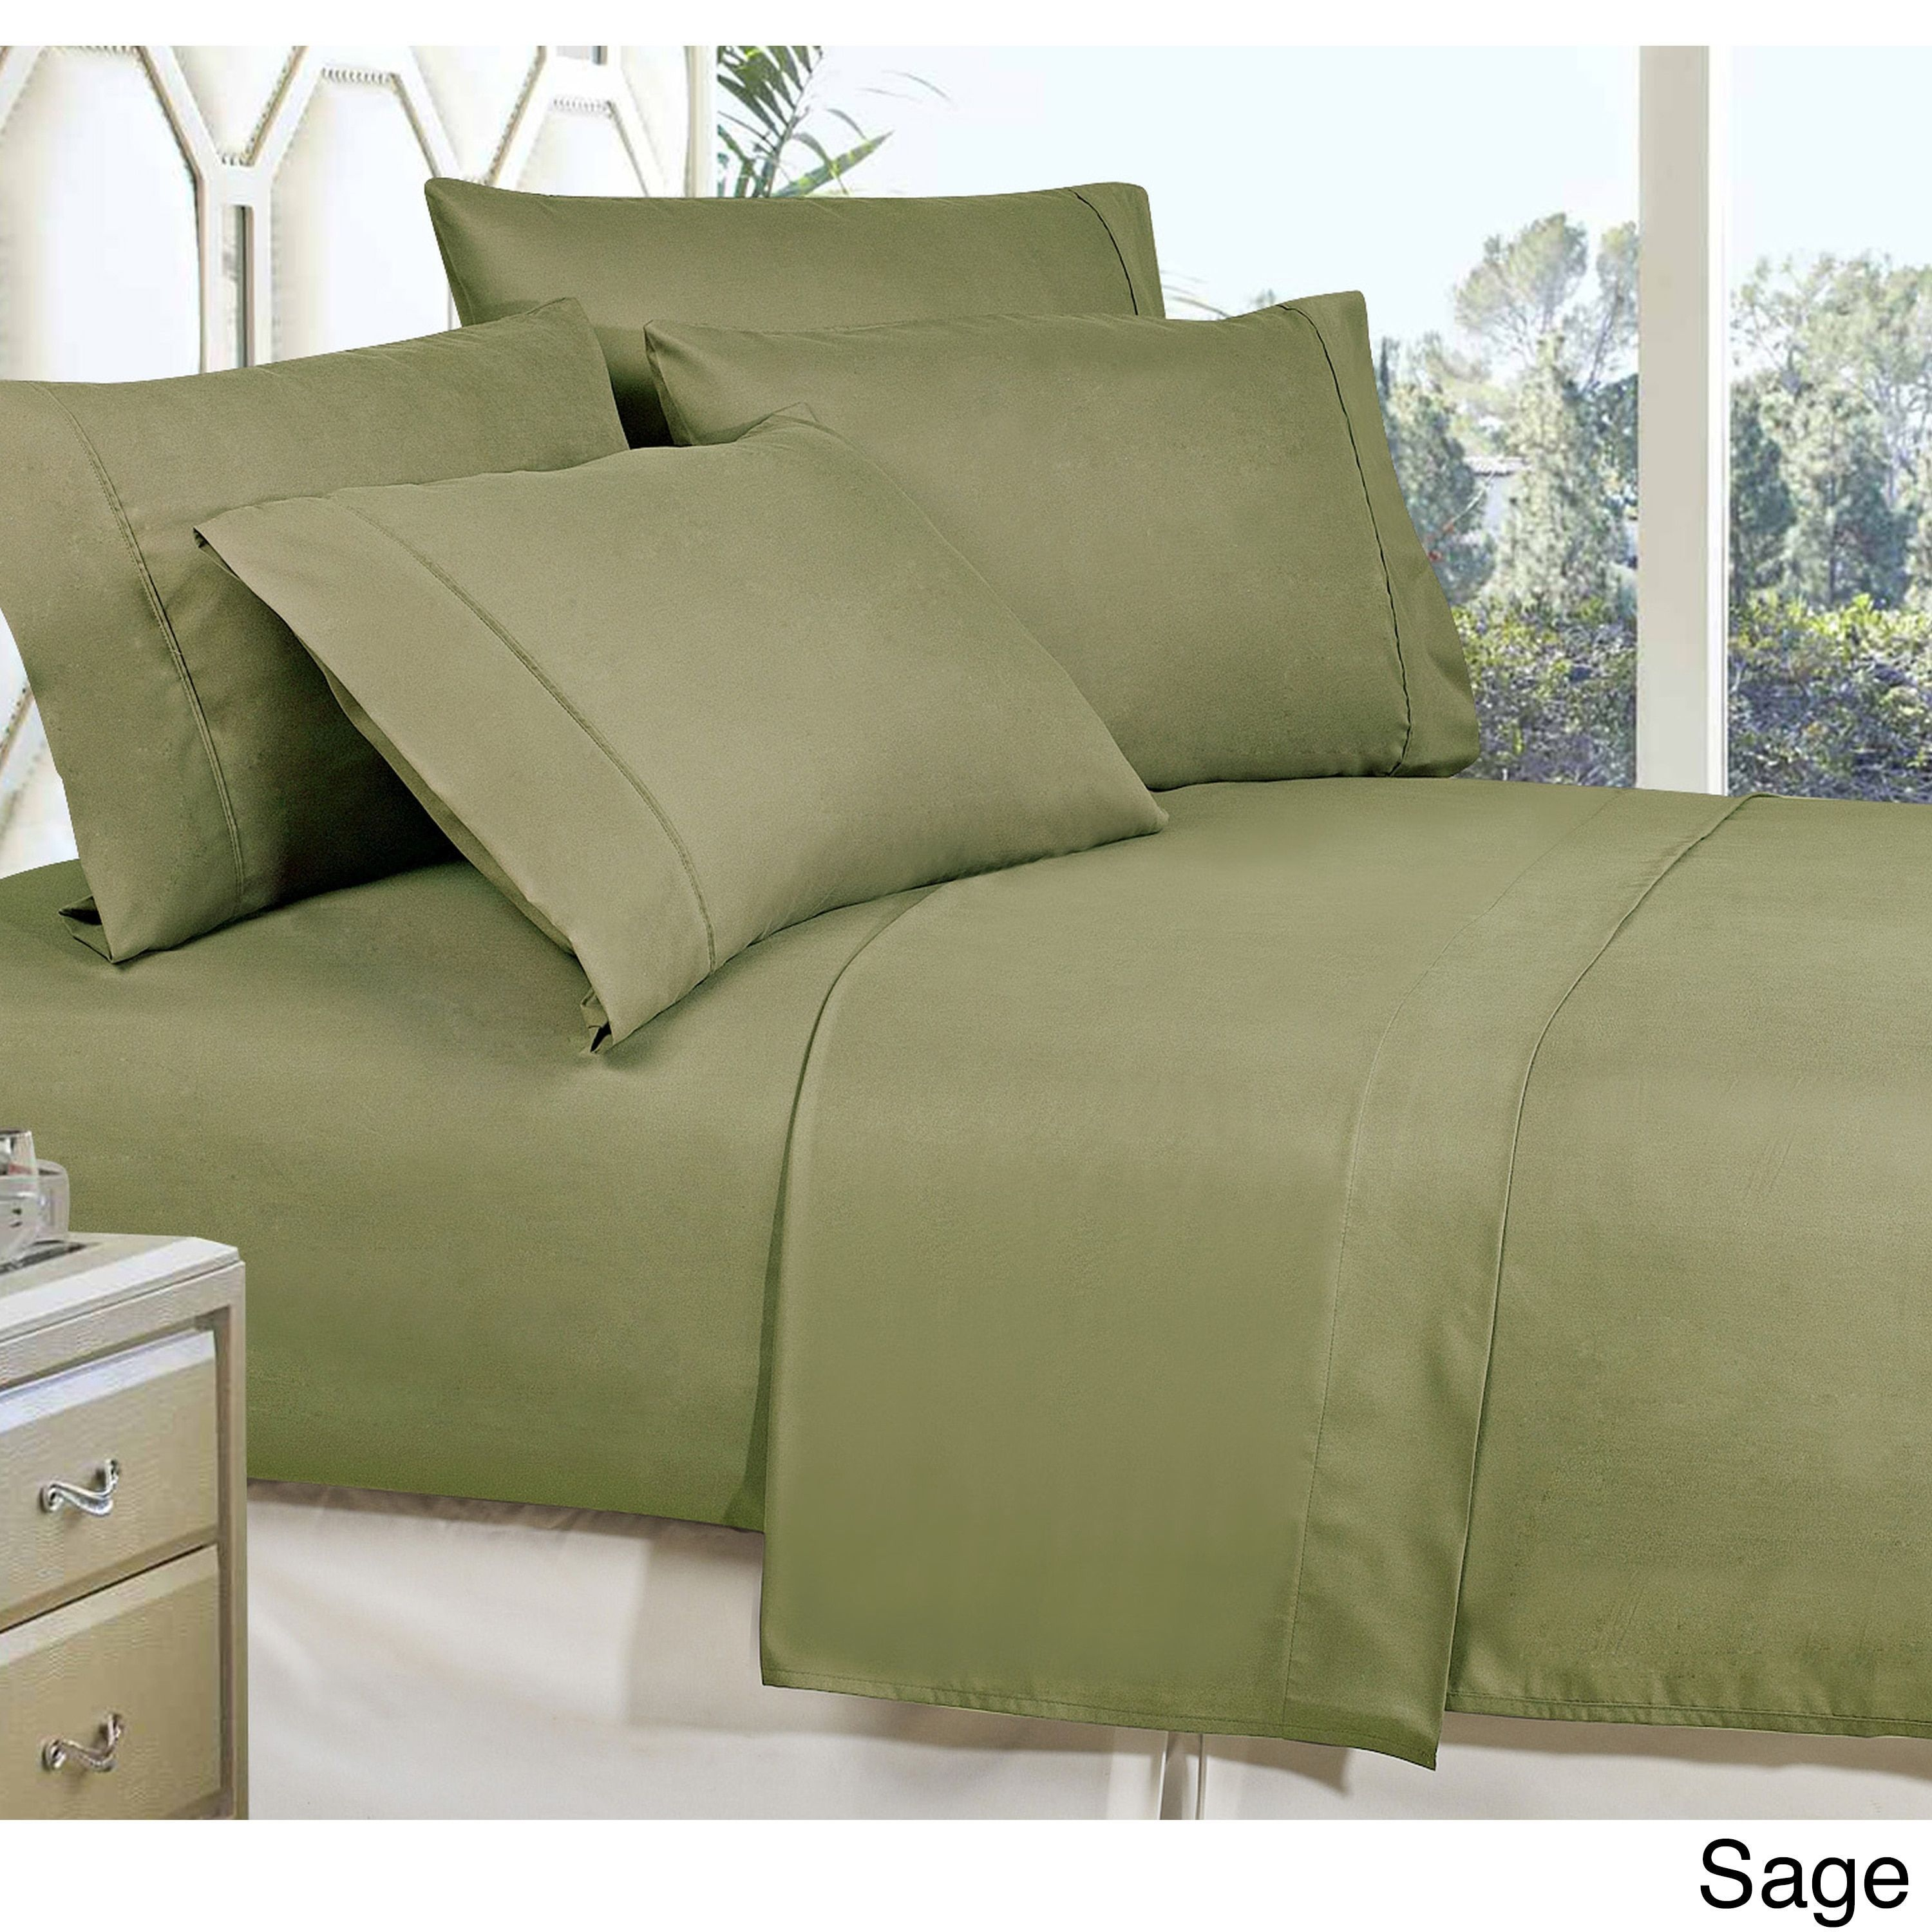 Exceptionnel Celine Linen Best, Softest, Coziest Bed Sheets Ever! 1800 Thread Count  Egyptian Quality Wrinkle Resistant Sheet Set With Deep Pockets  HypoAllergenic, ...